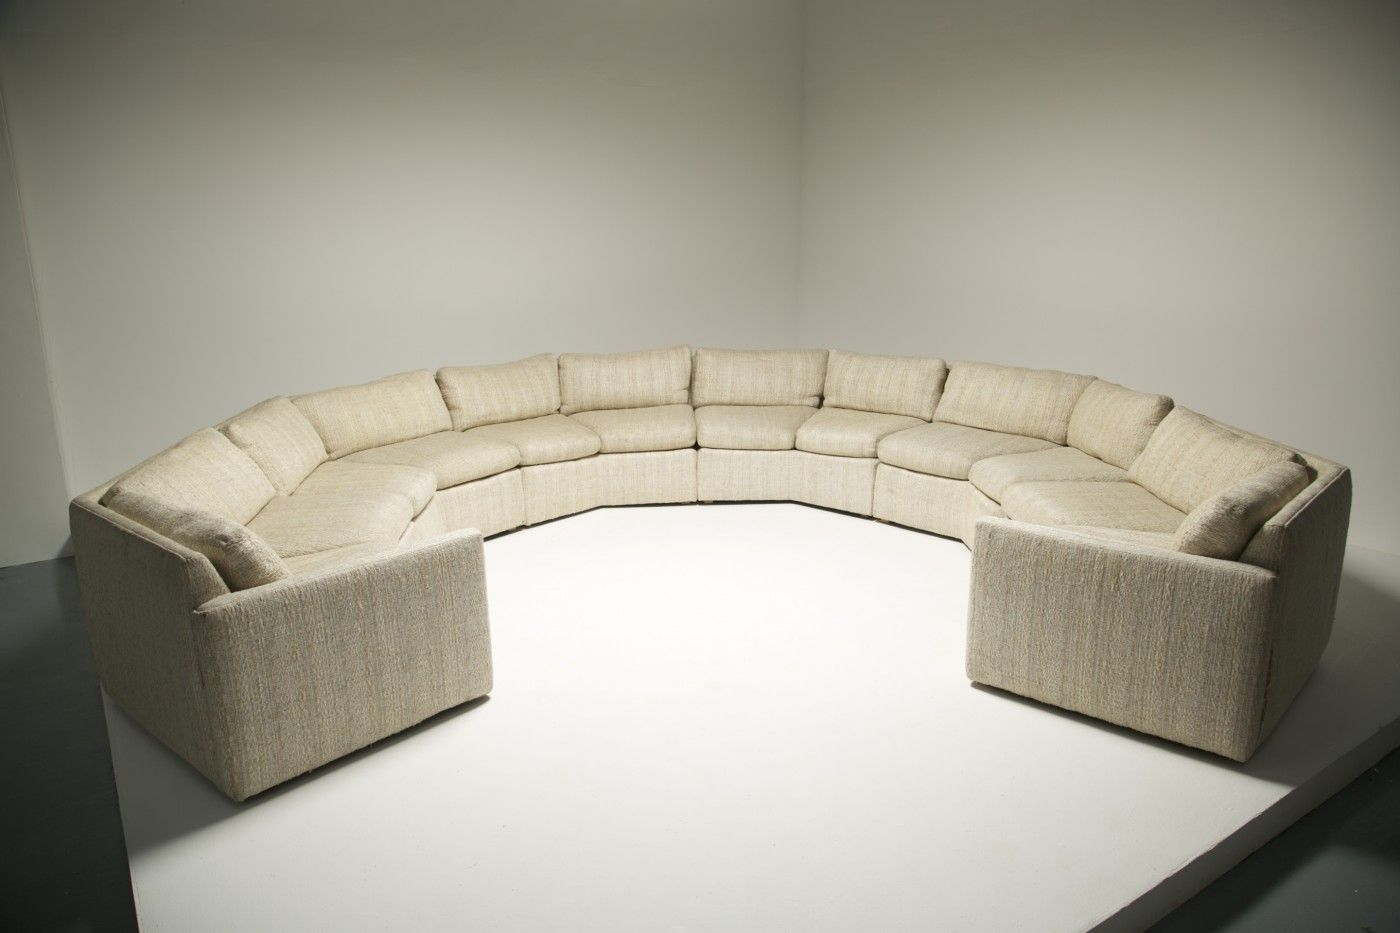 Vintage Tweed Sectional Sofa For Sale At Pamono